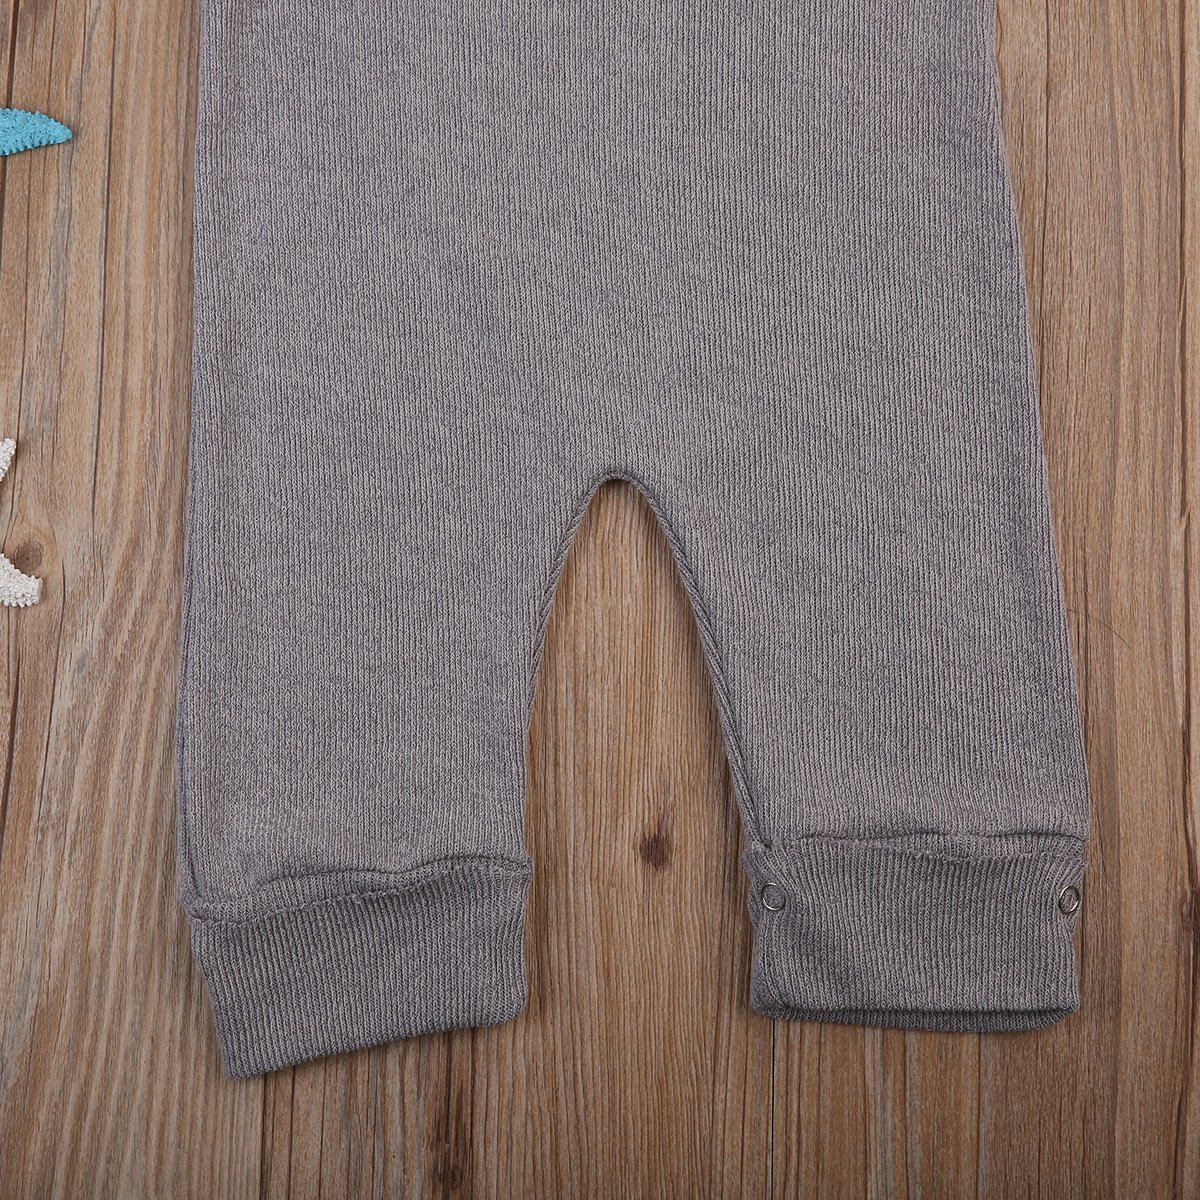 Imcute Baby Boys Girls Strap Grey Kintted Sweater Romper Jumpsuit Outfit